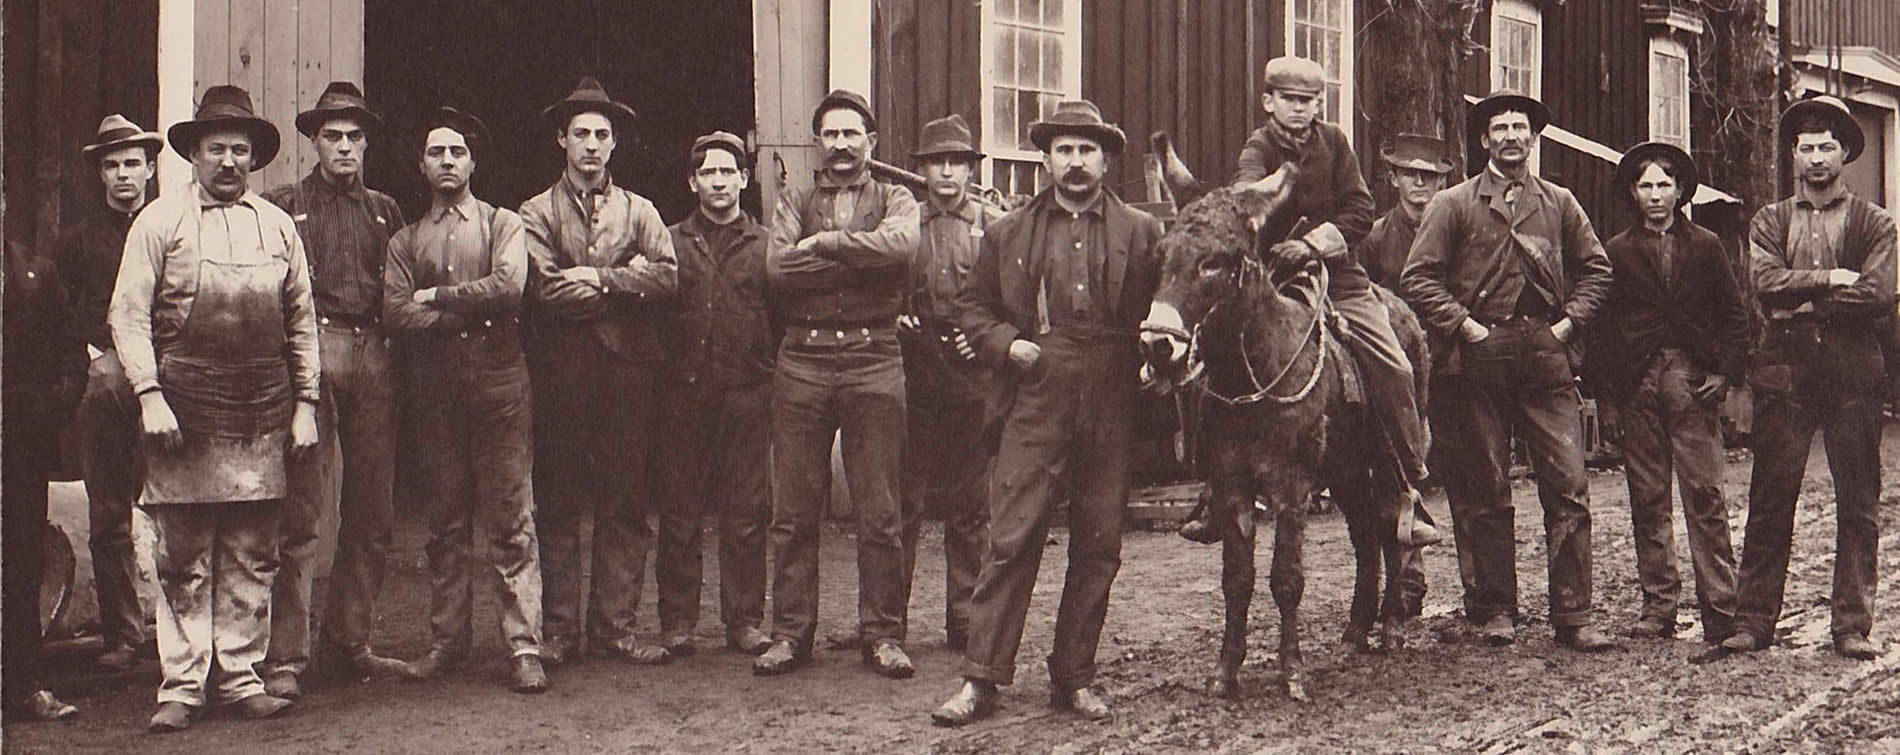 1890's knight foundry crew sutter creek ca